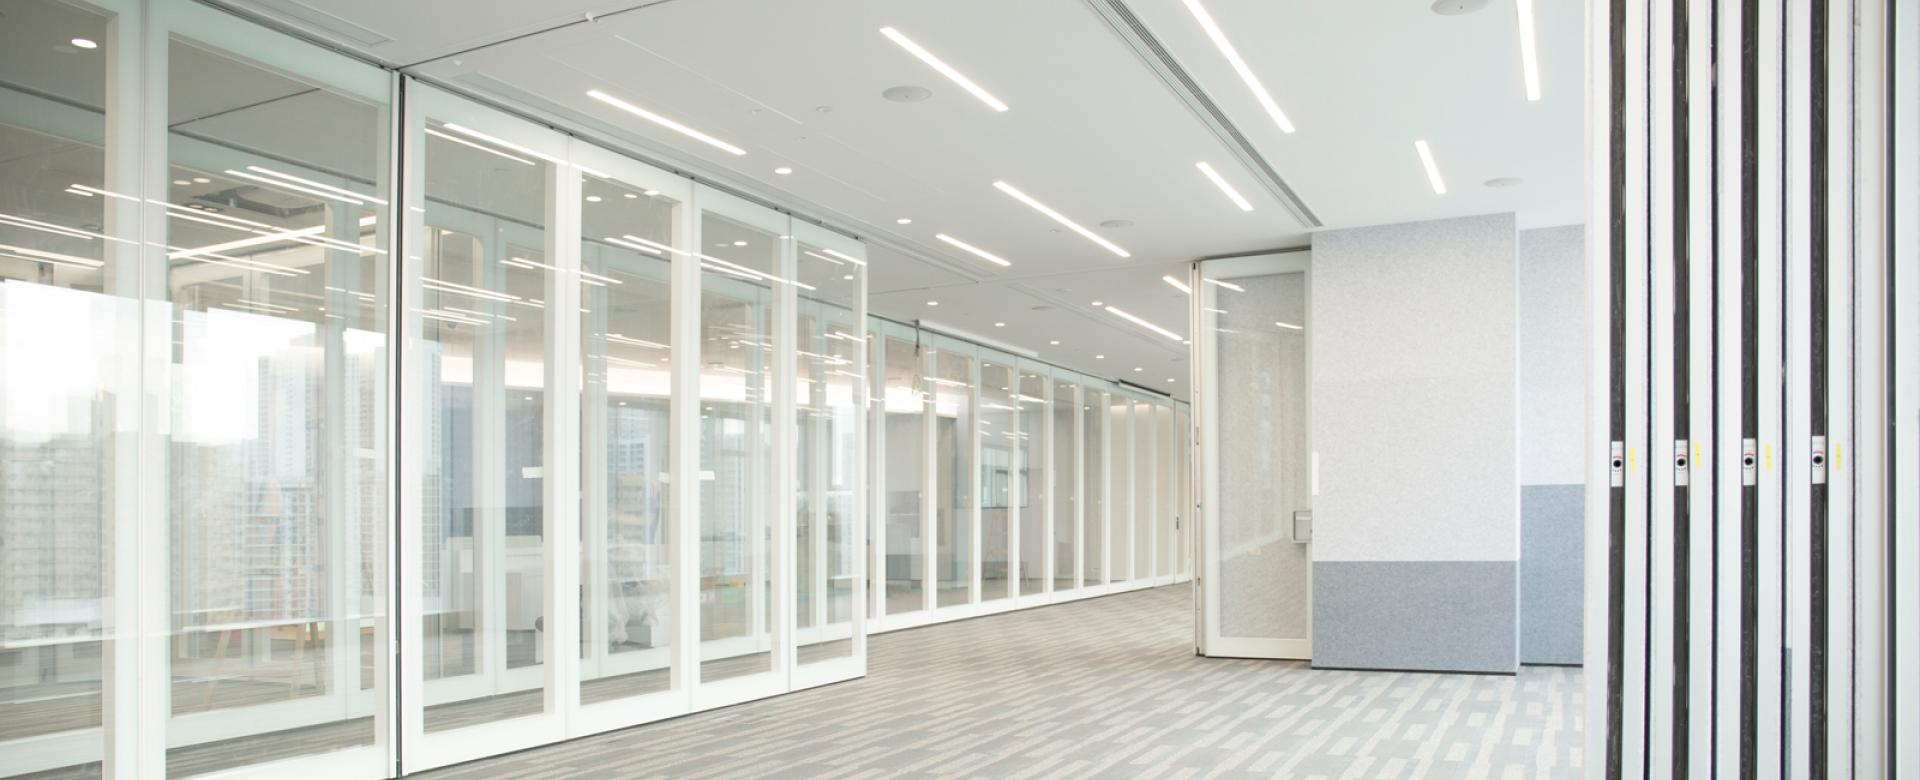 Movable solid and double glazed panels for a maximum of flexibility